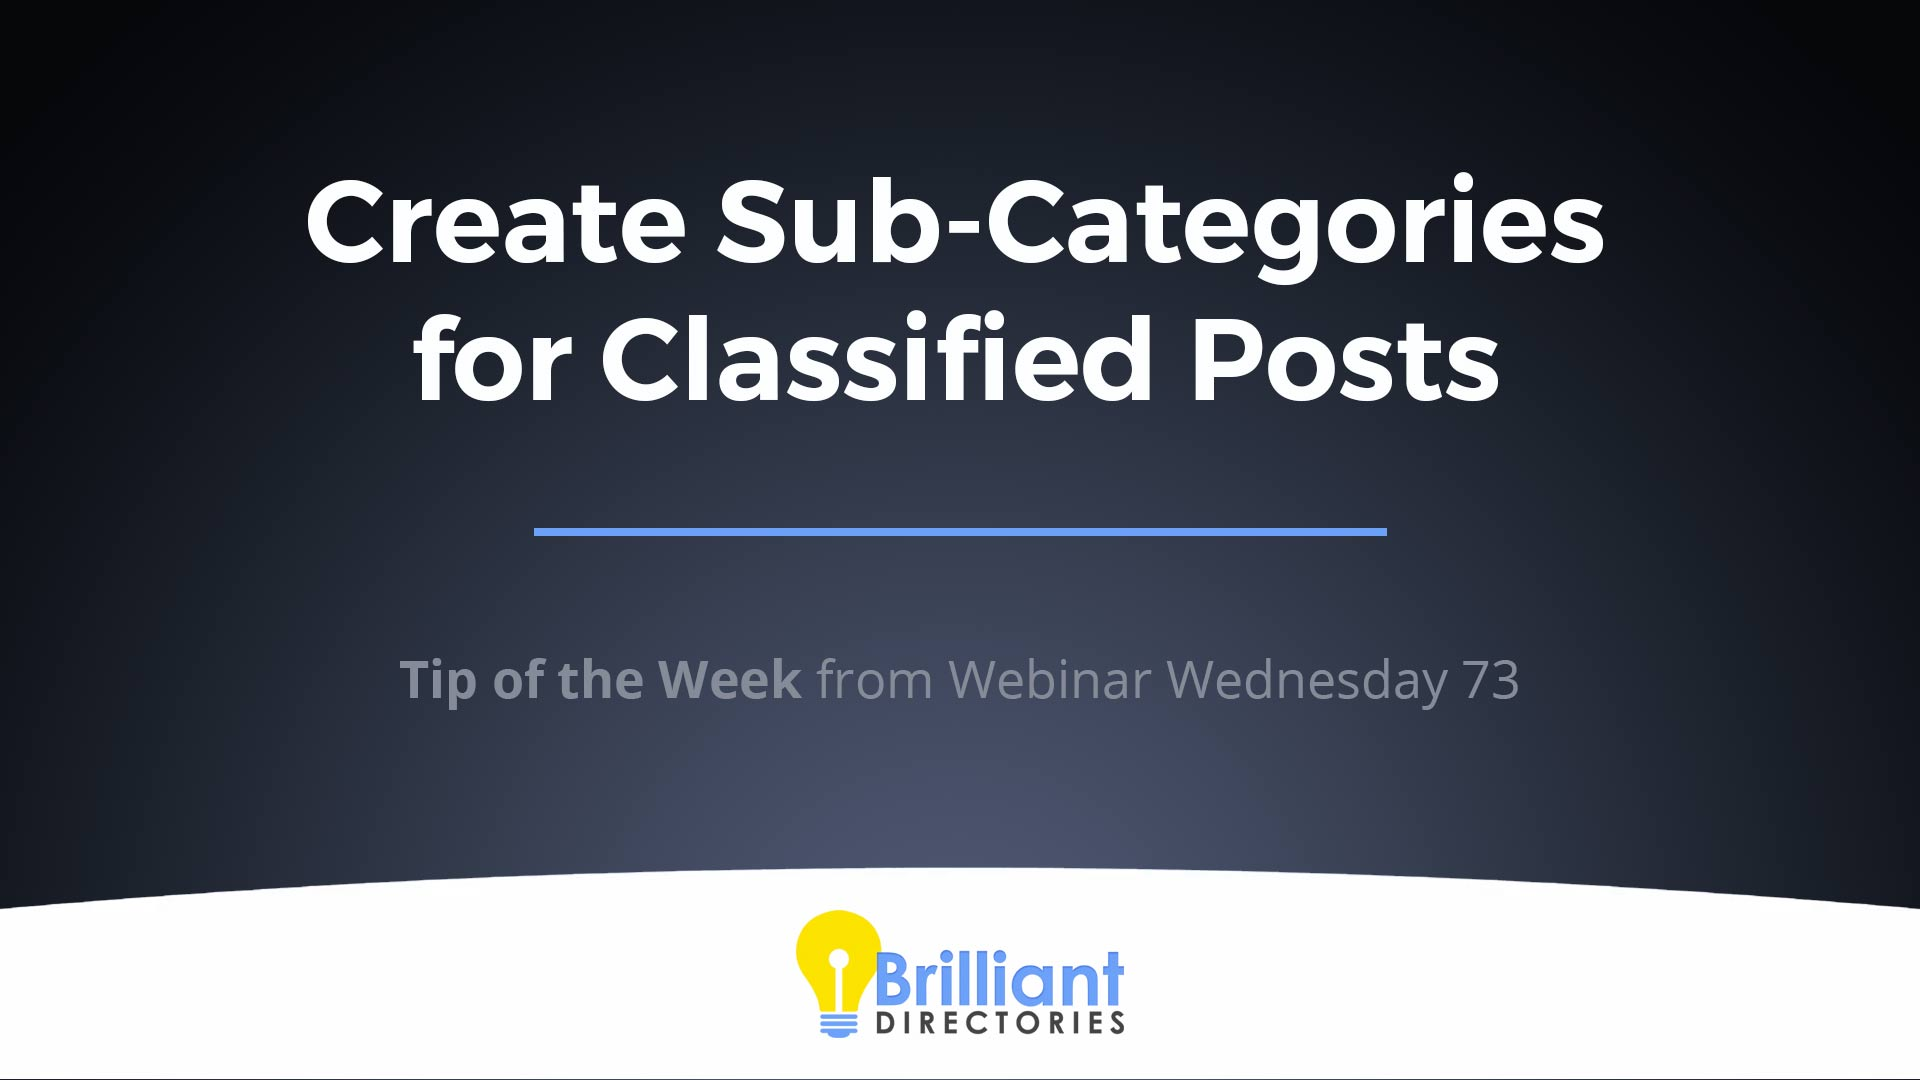 https://www.brilliantdirectories.com/blog/create-sub-categories-for-classified-posts